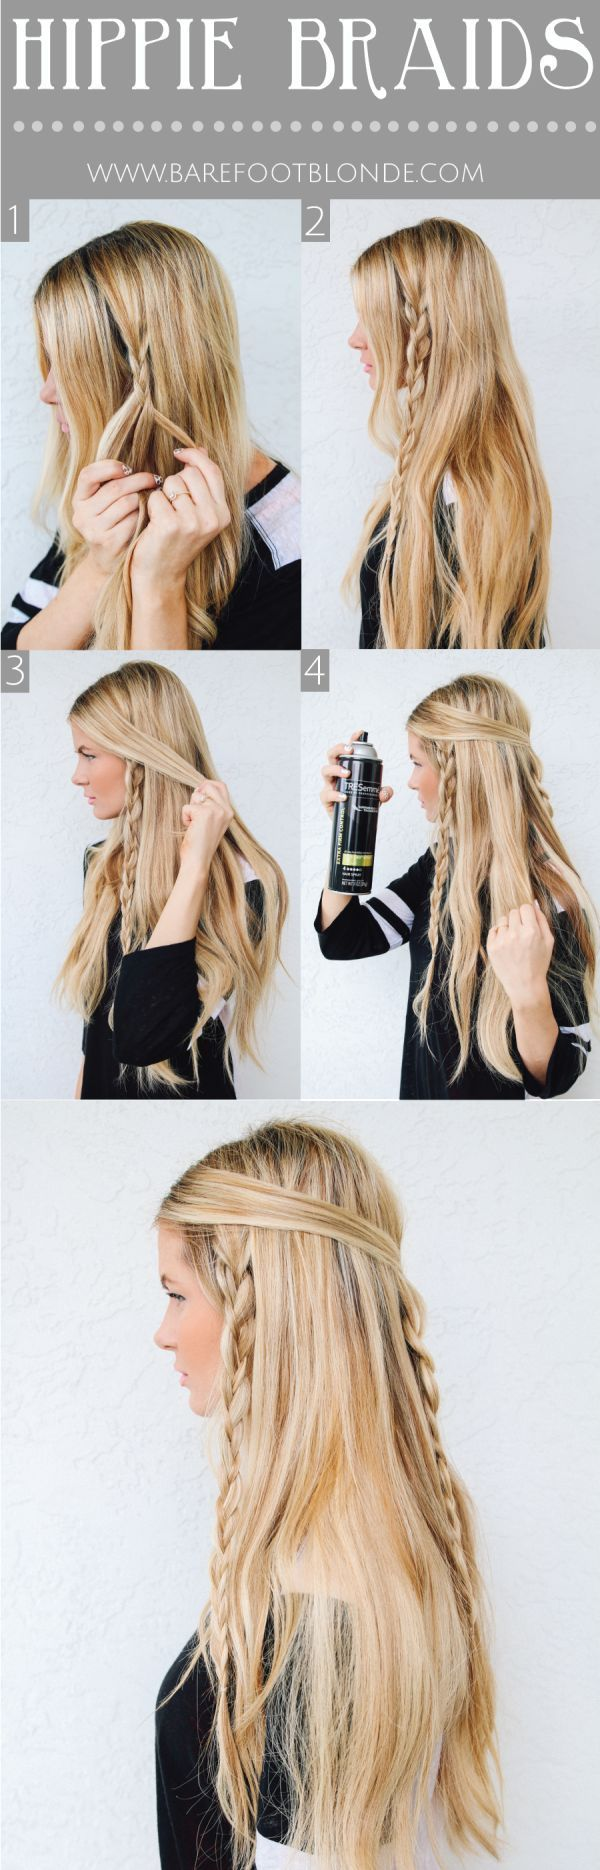 best 20+ cute lazy hairstyles ideas on pinterest   lazy hairstyles